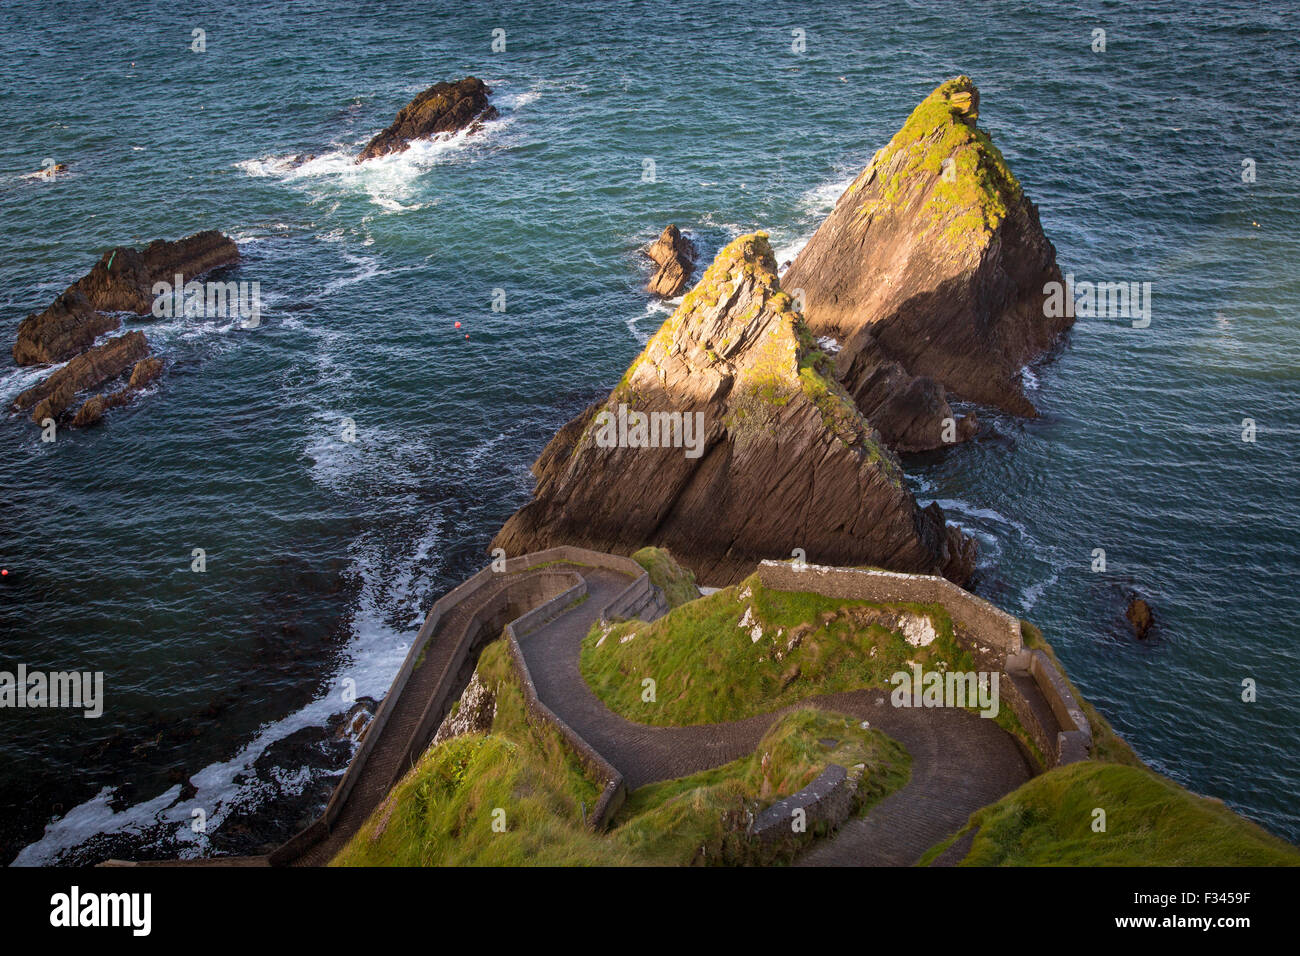 Windy road to Dunquin Harbor, Dunquin, County Kerry, Republic of Ireland Stock Photo